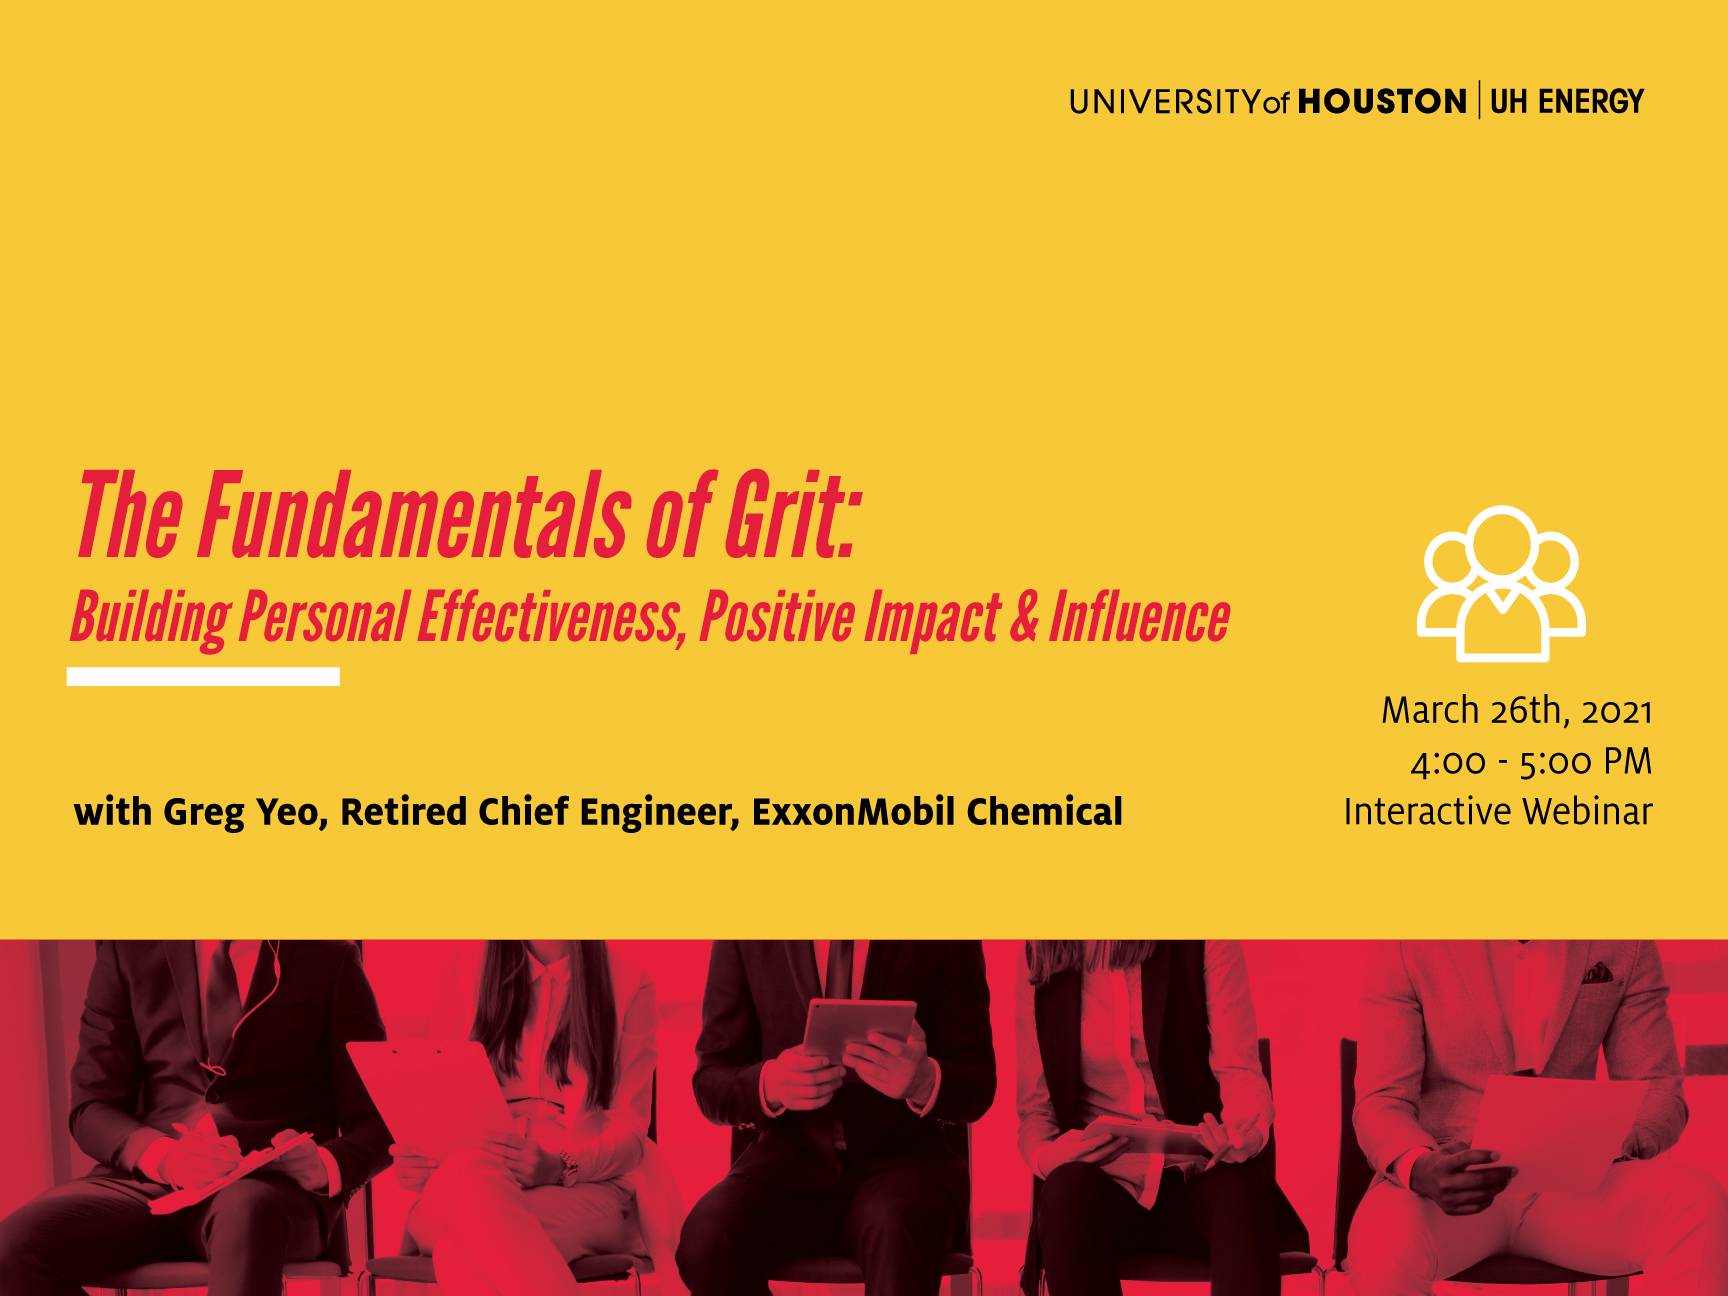 The Fundamentals of Grit: Building Personal Effectiveness, Positive Impact and Influence Image